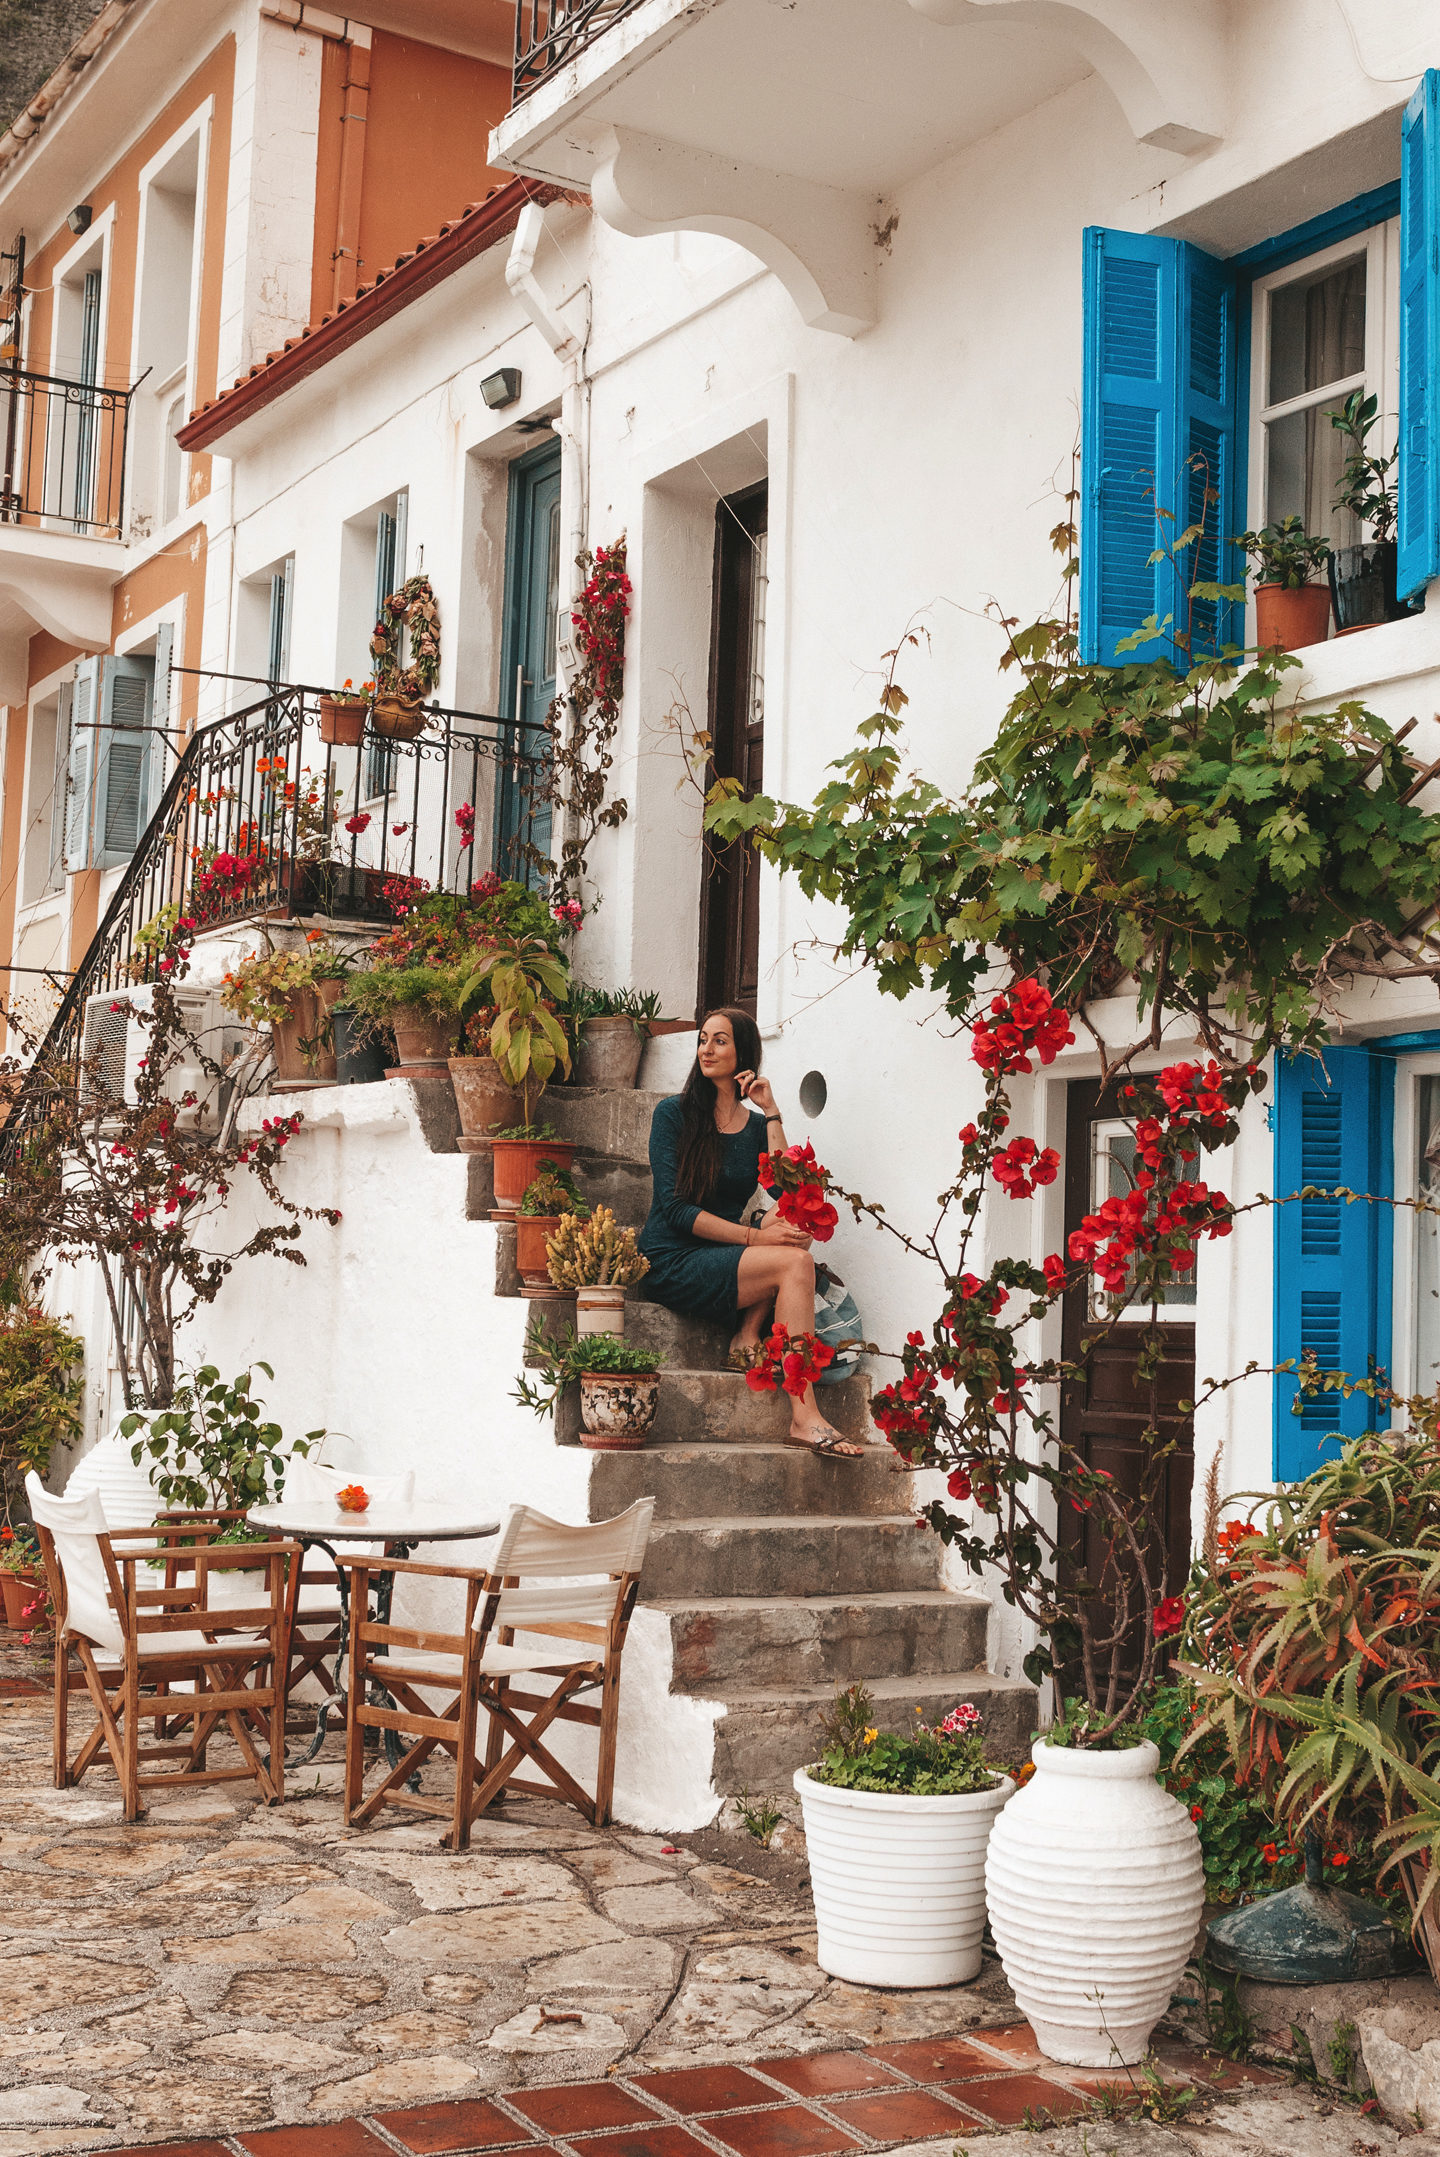 Places to eat in Parga hotspots